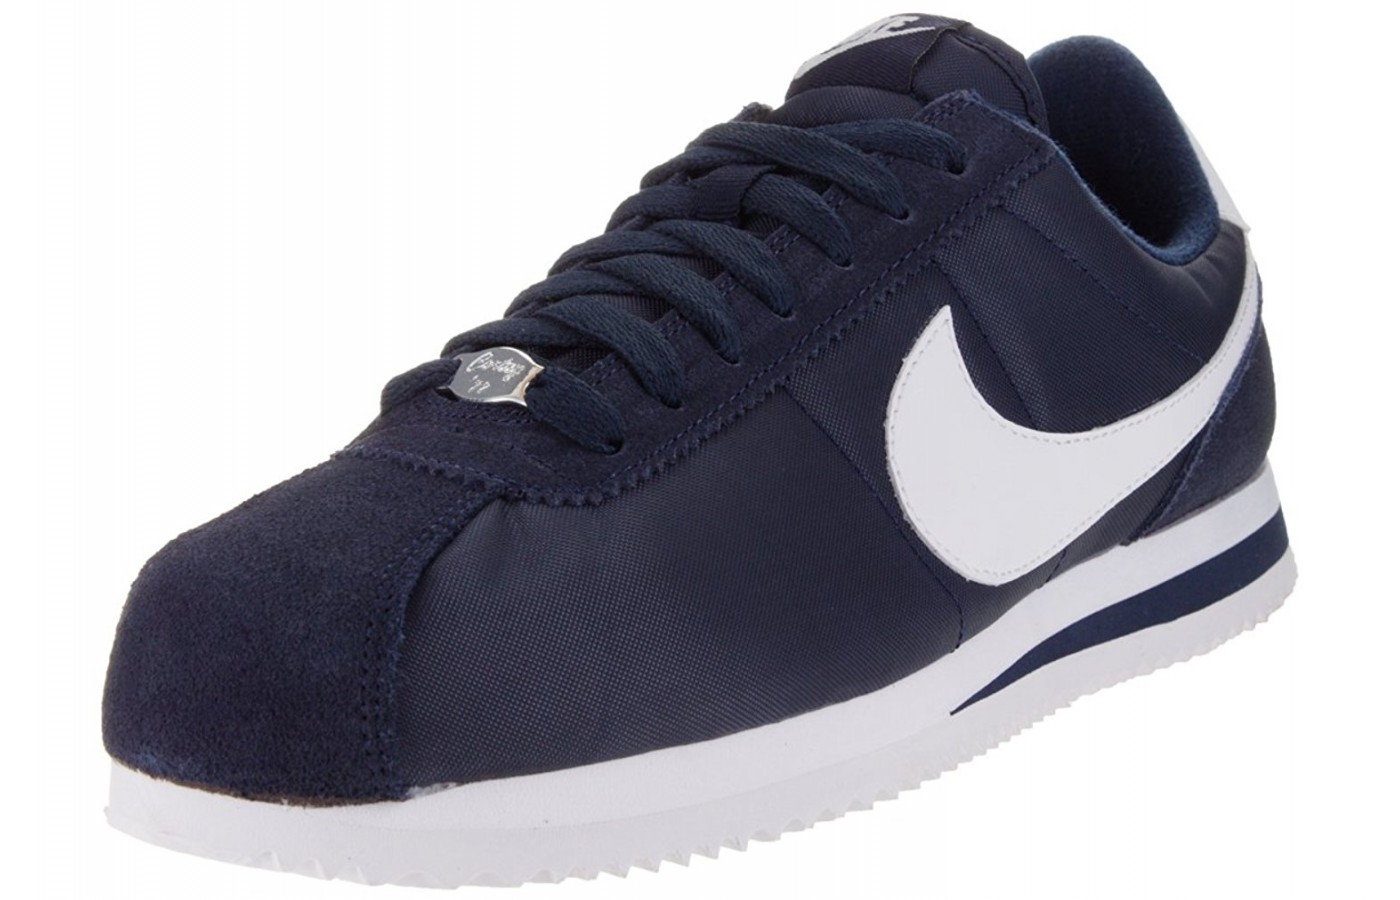 9e050206e1a7 Nike Cortez Reviewed for Performance   Style in 2019